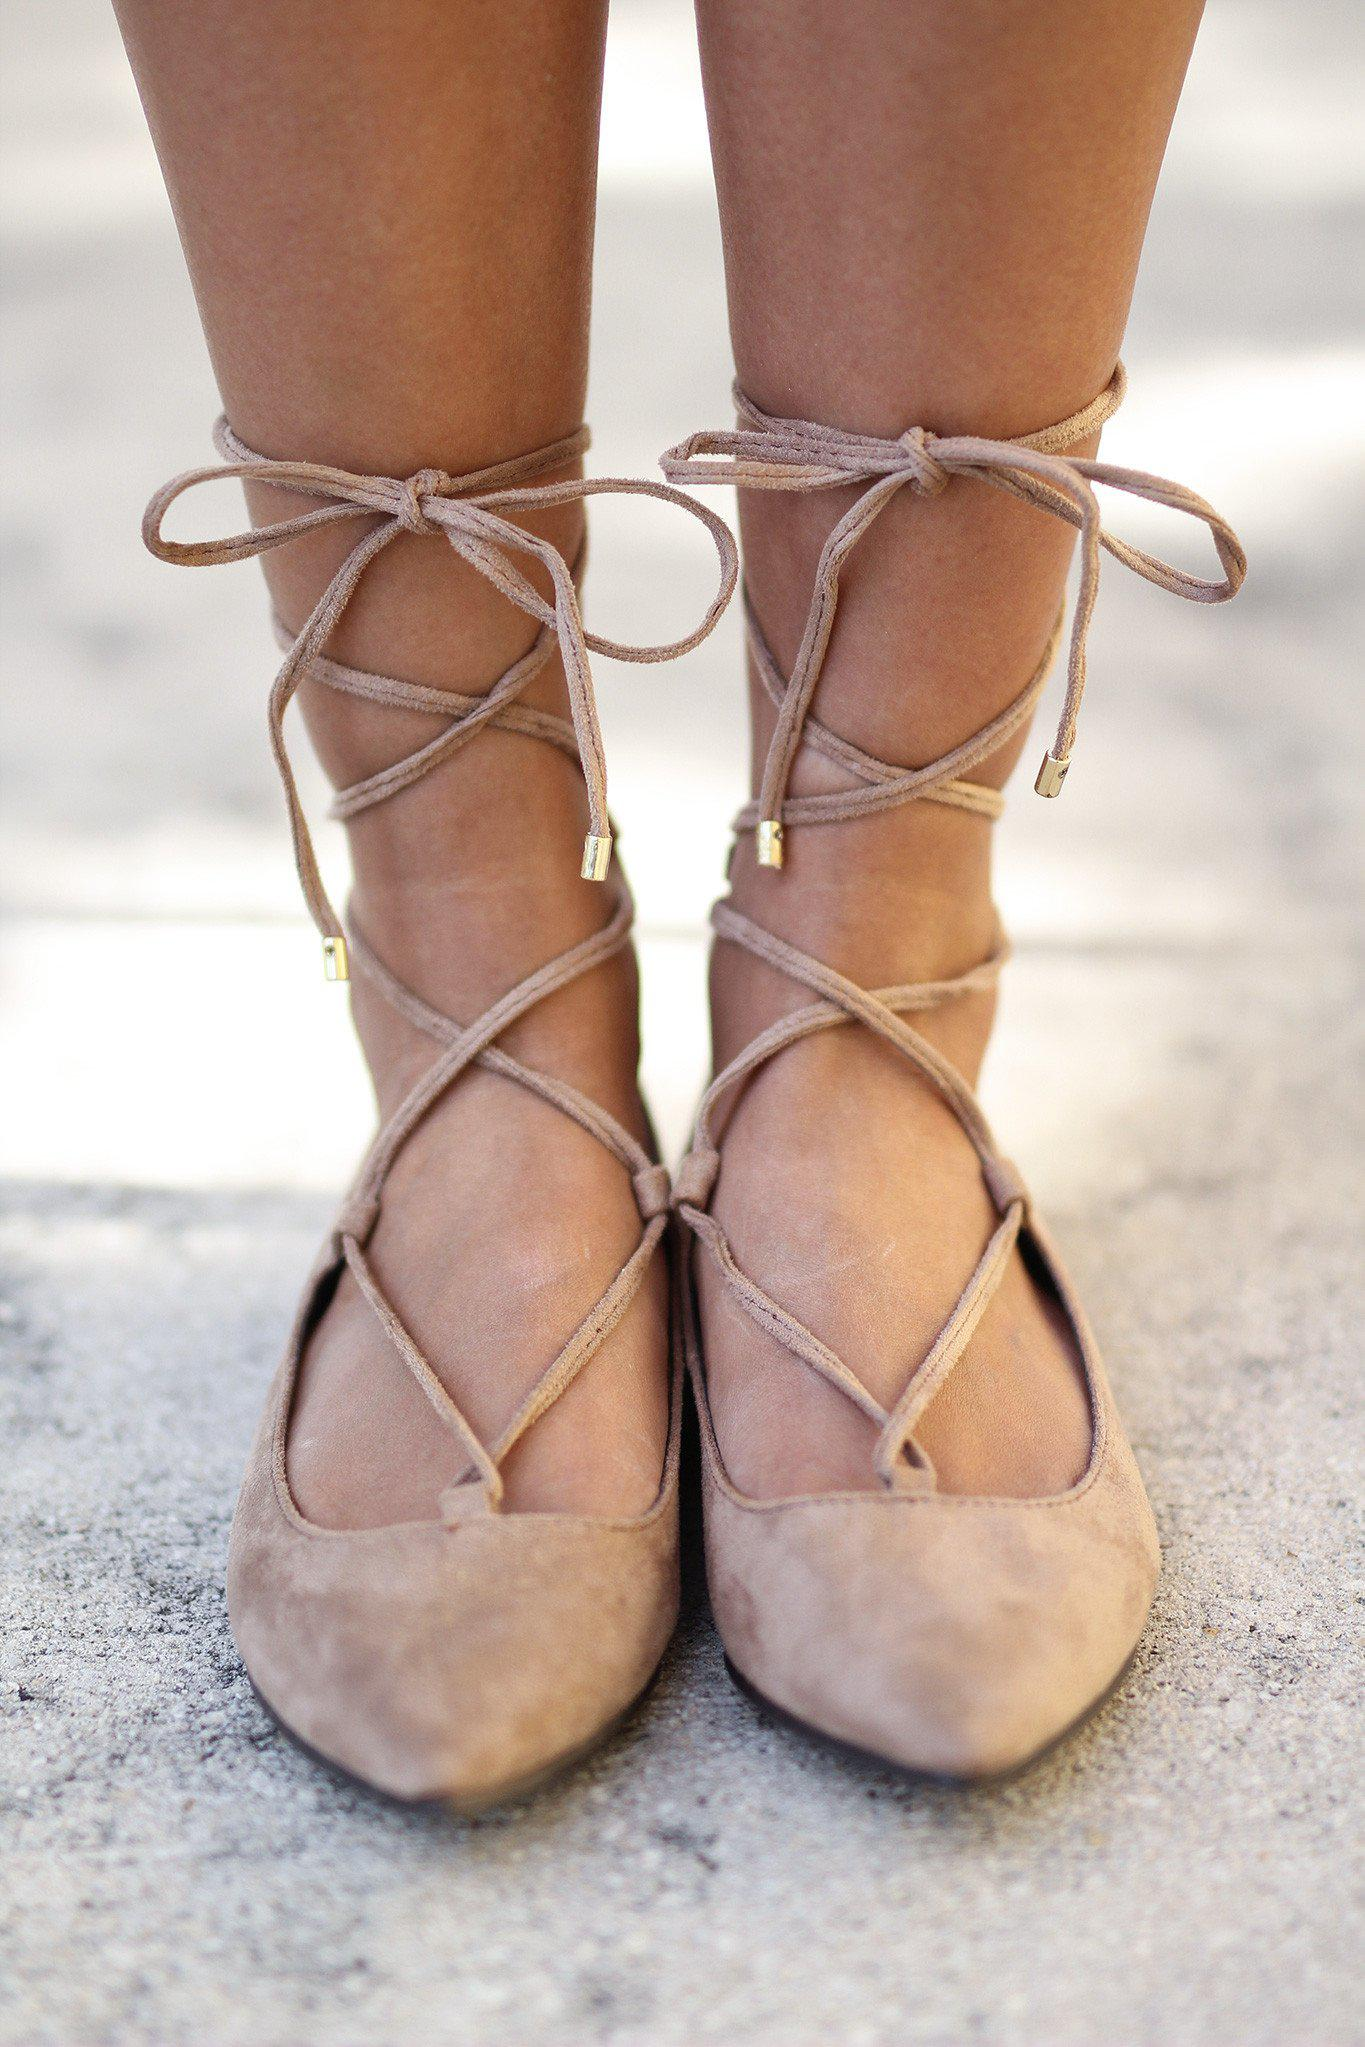 You searched for: lace up ballet shoes! Etsy is the home to thousands of handmade, vintage, and one-of-a-kind products and gifts related to your search. No matter what you're looking for or where you are in the world, our global marketplace of sellers can help you .